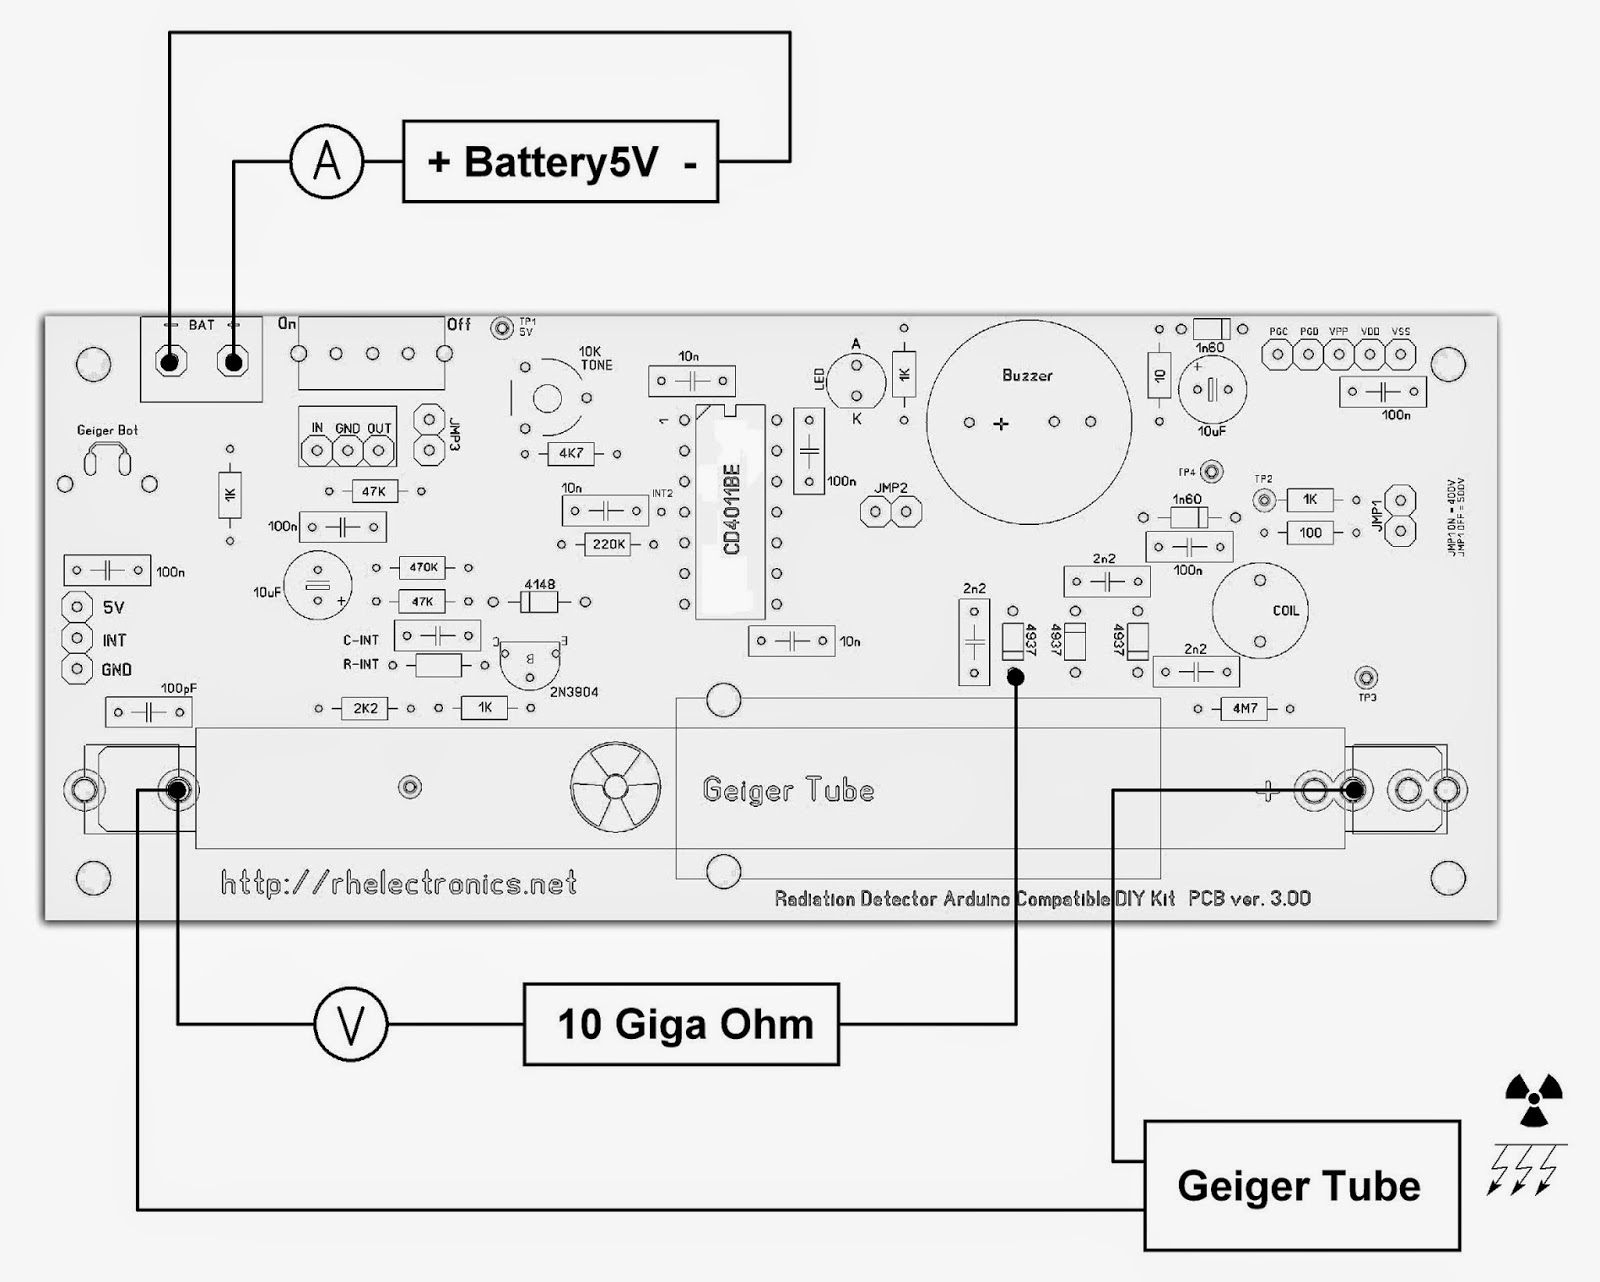 Diy Electronics 2014 Geiger Counter Wiring Diagram High Speed Count Under This Condition Is Identical To 1200usv H Gamma Radiation Load Or At Least It Simulates Extremely Conditions